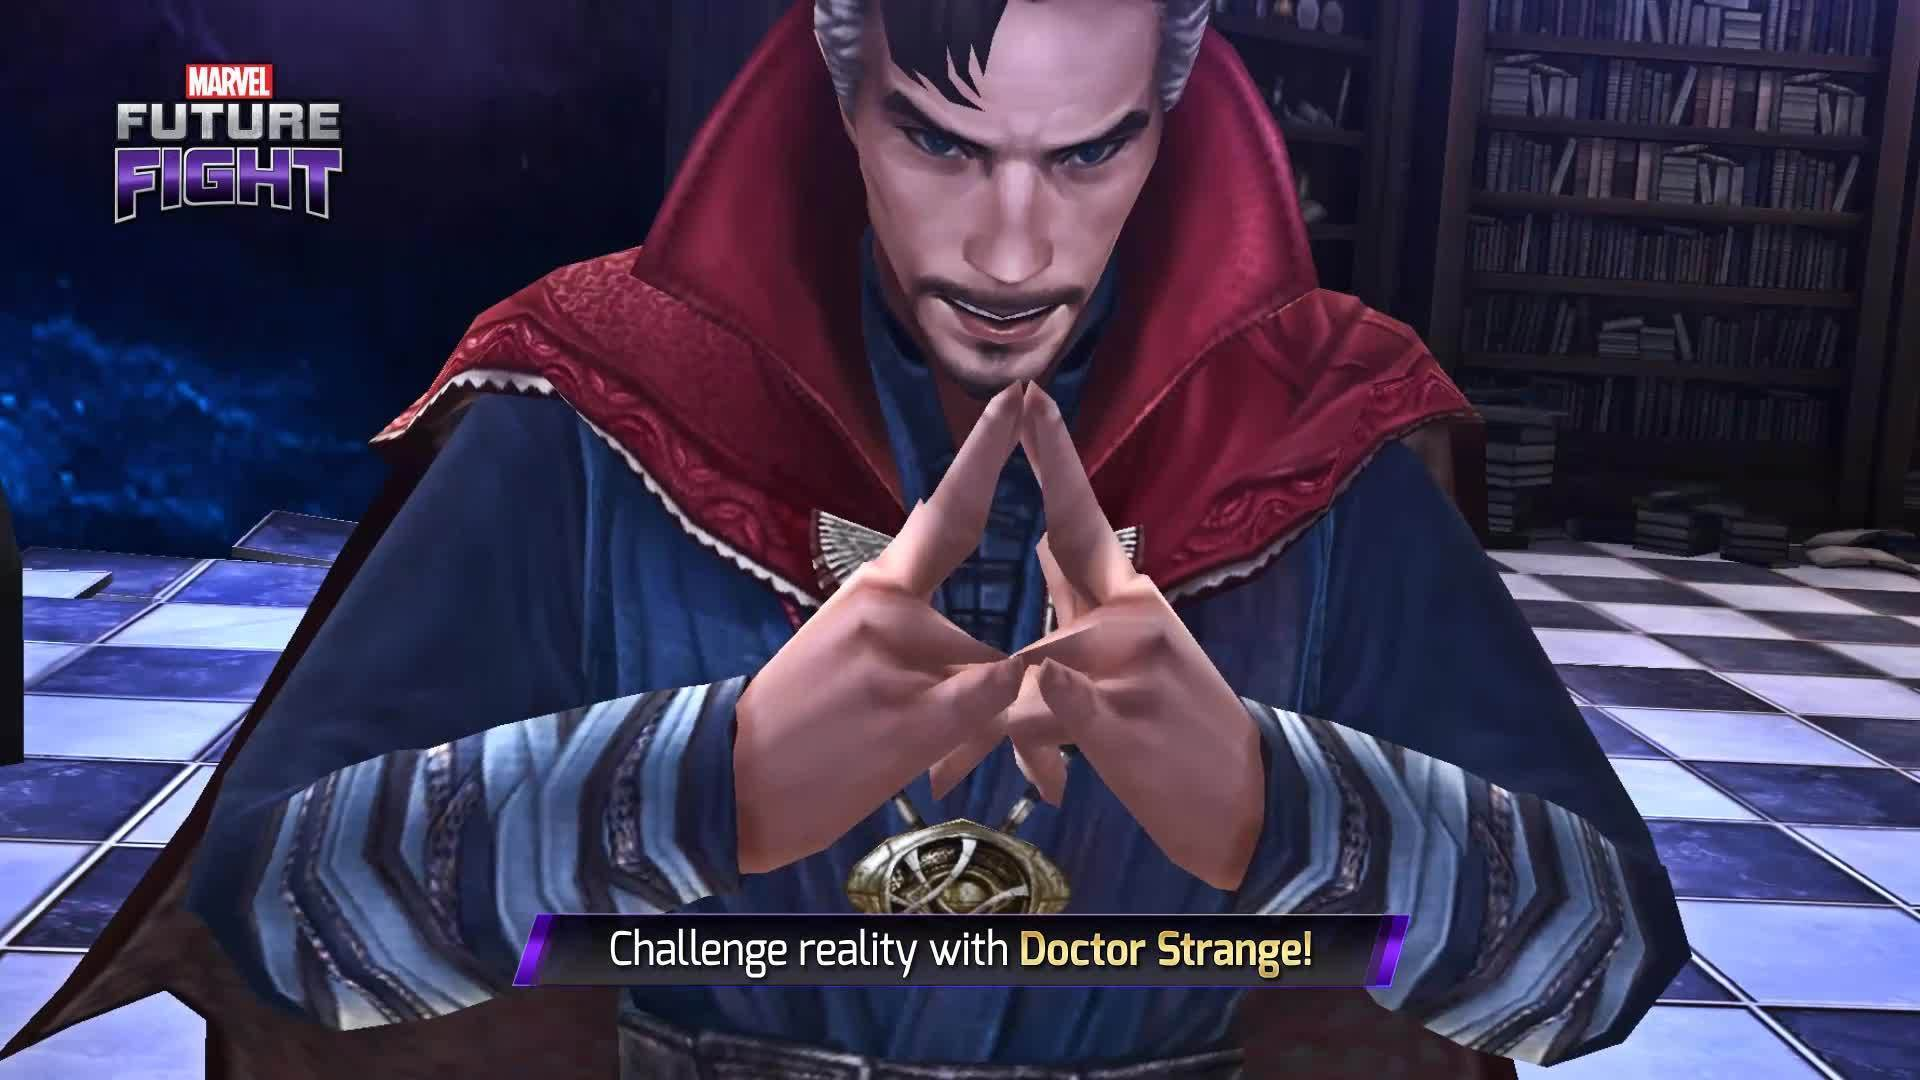 MARVEL Future Fight | Doctor Strange Update